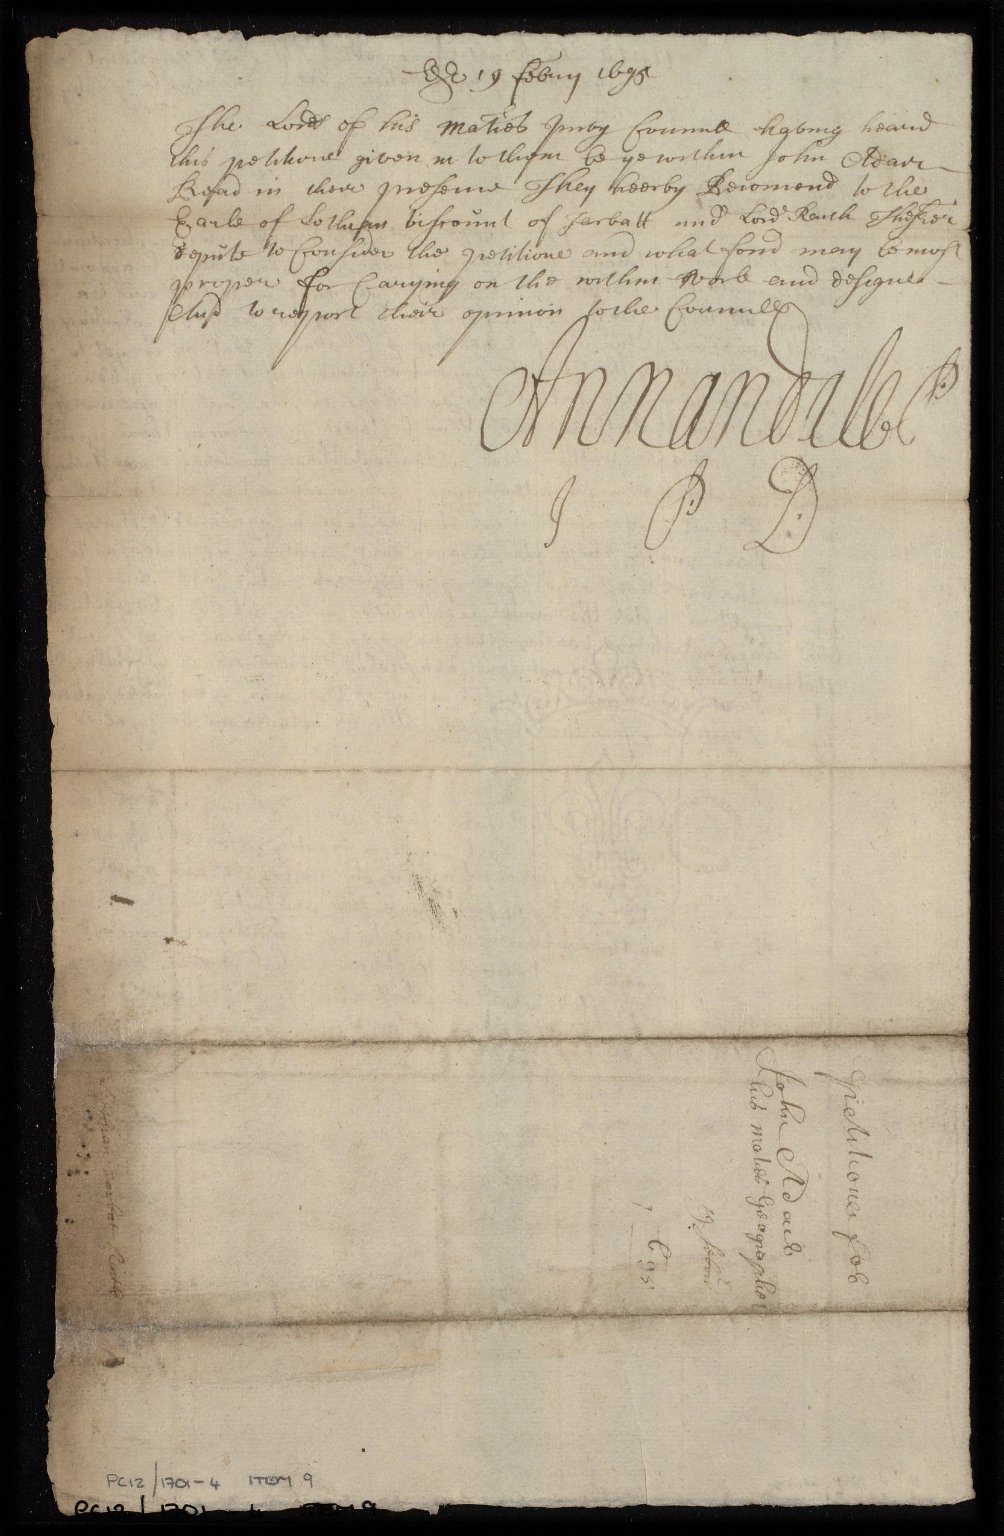 [Petition of John Adair to the Privy Council concerning delays in his work and requesting payments] [2 of 2]